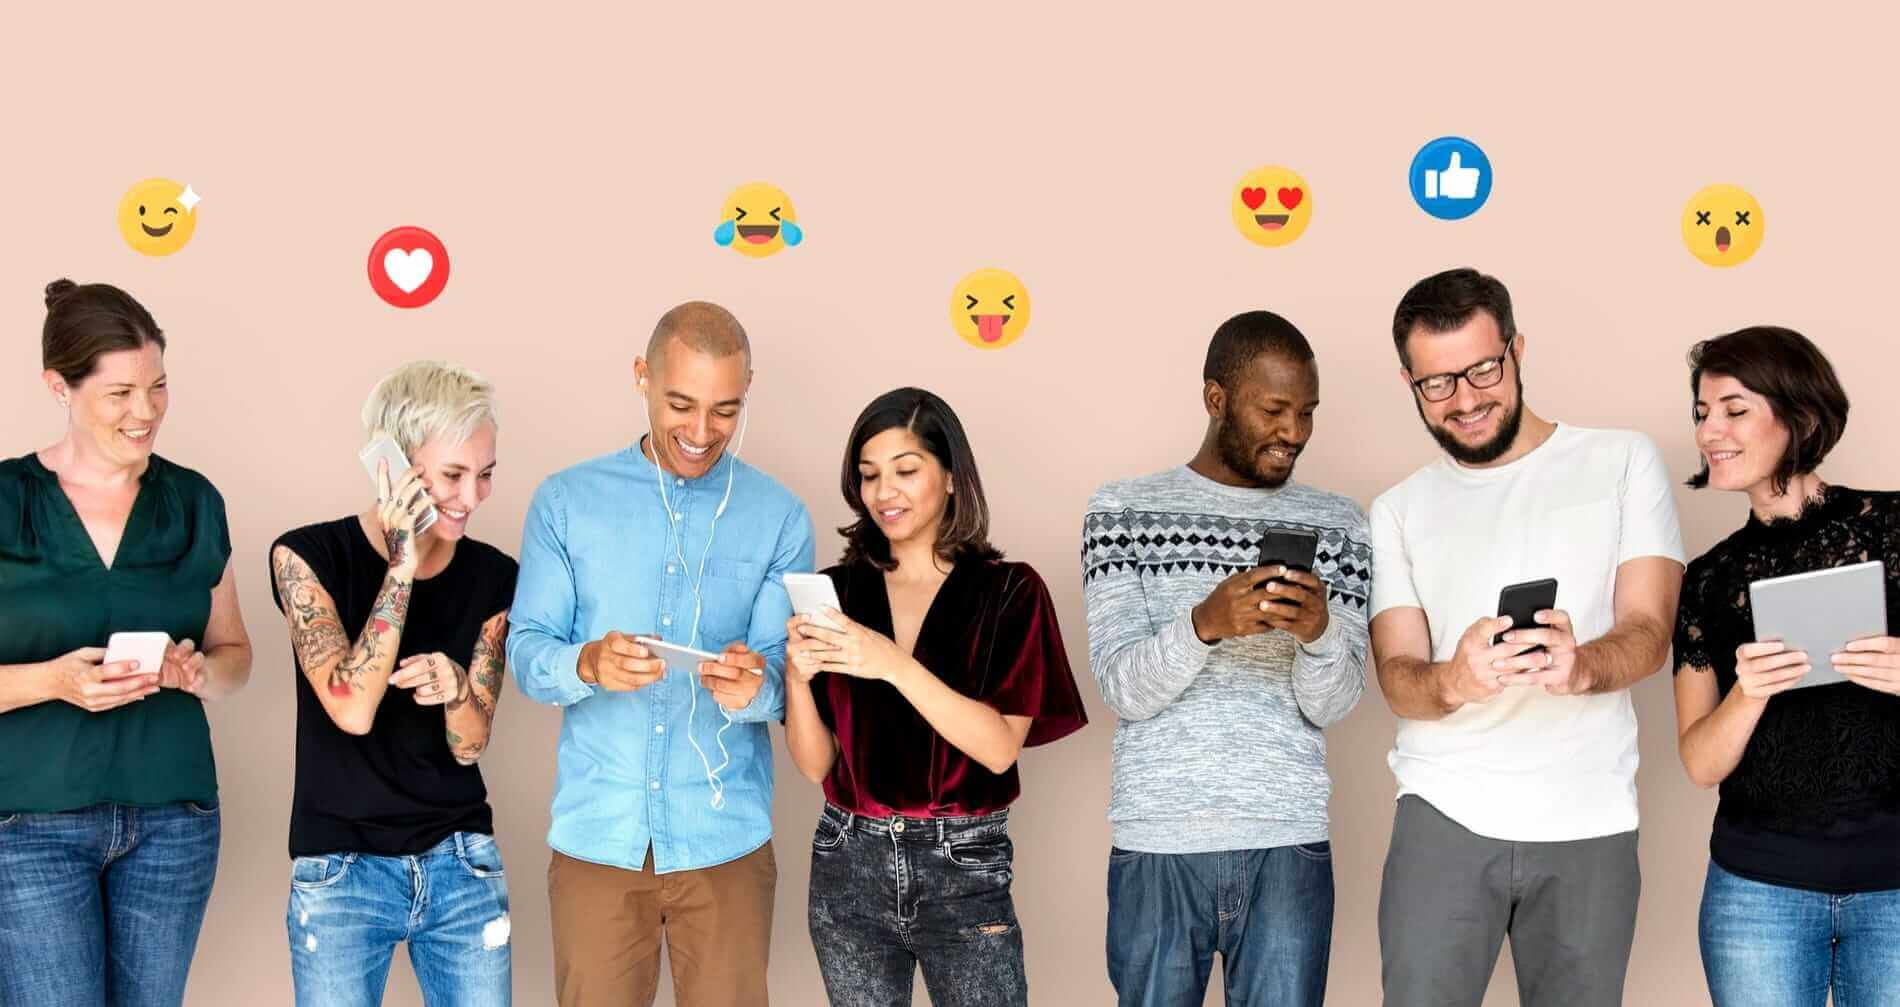 happy-diverse-people-using-digital-devices